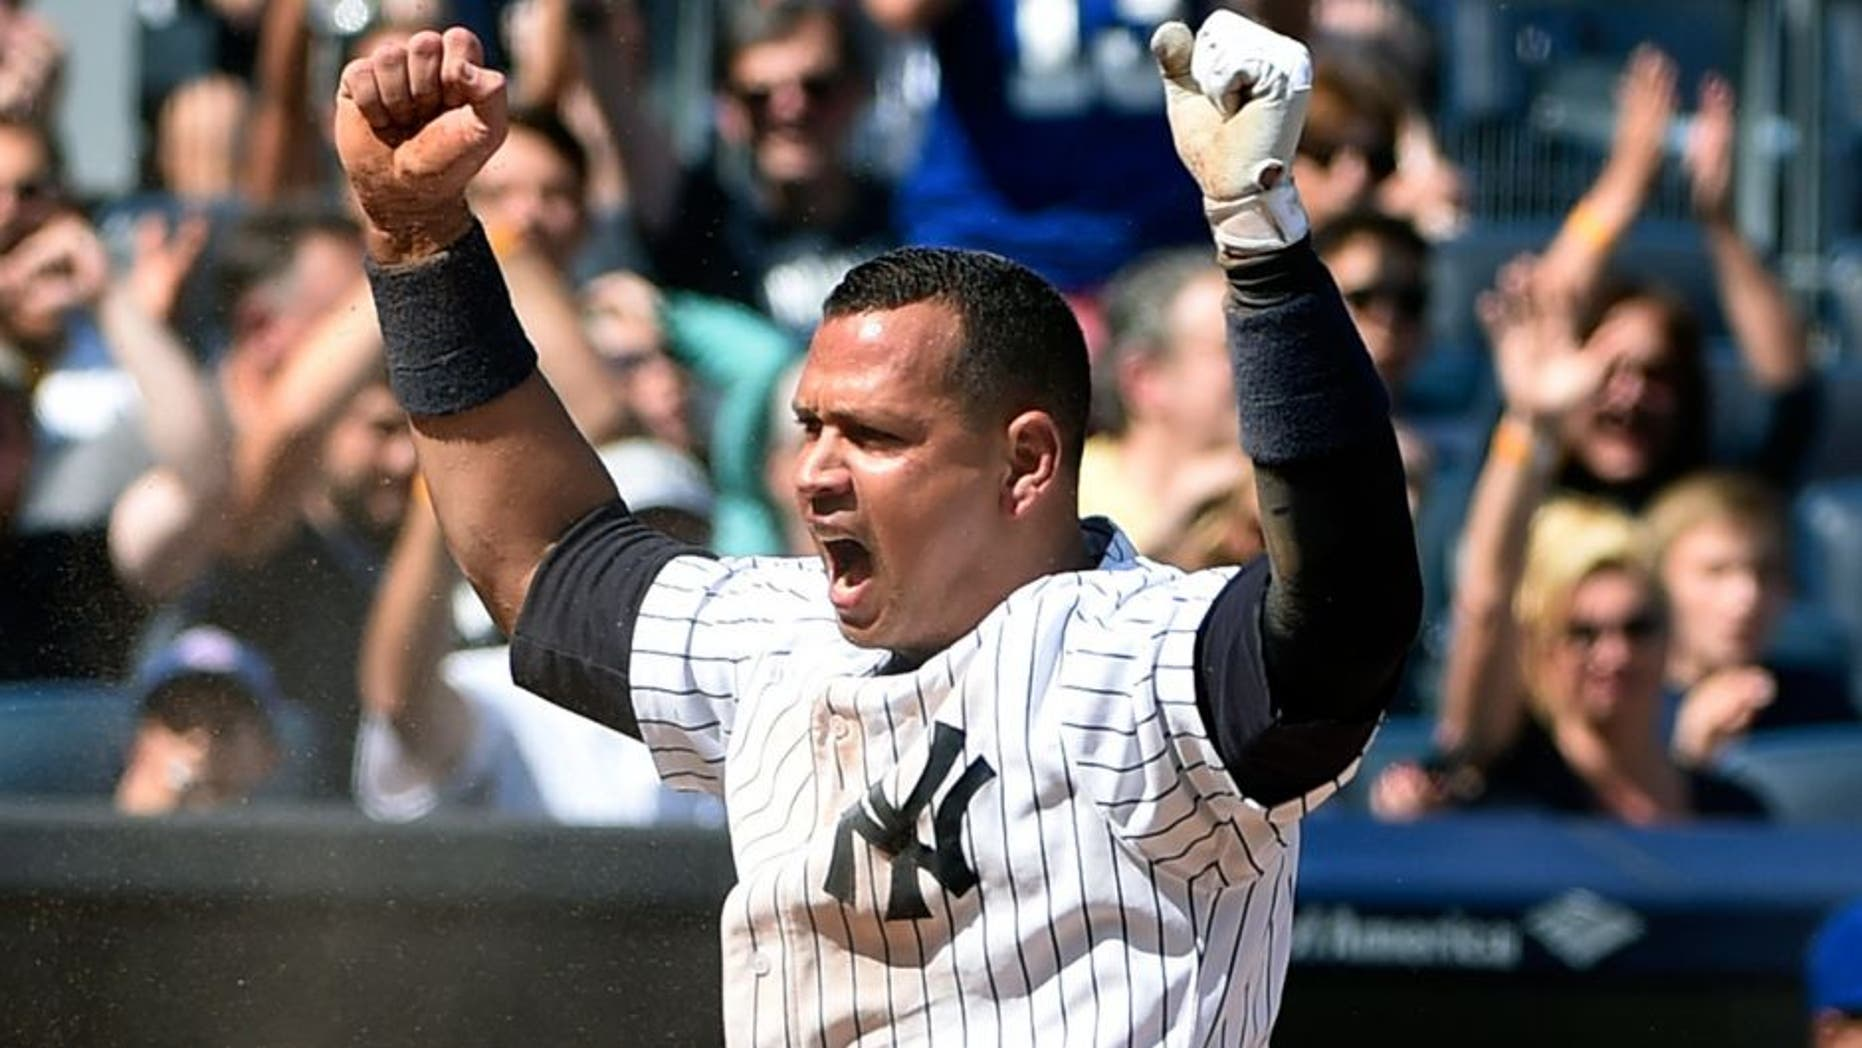 New York Yankees' Alex Rodriguez celebrates after scoring on Didi Gregorius' sacrifice fly in the second inning of a baseball game against the Toronto Blue Jays at Yankee Stadium, Sunday, Sept. 13, 2015, in New York. (AP Photo/Kathy Kmonicek)